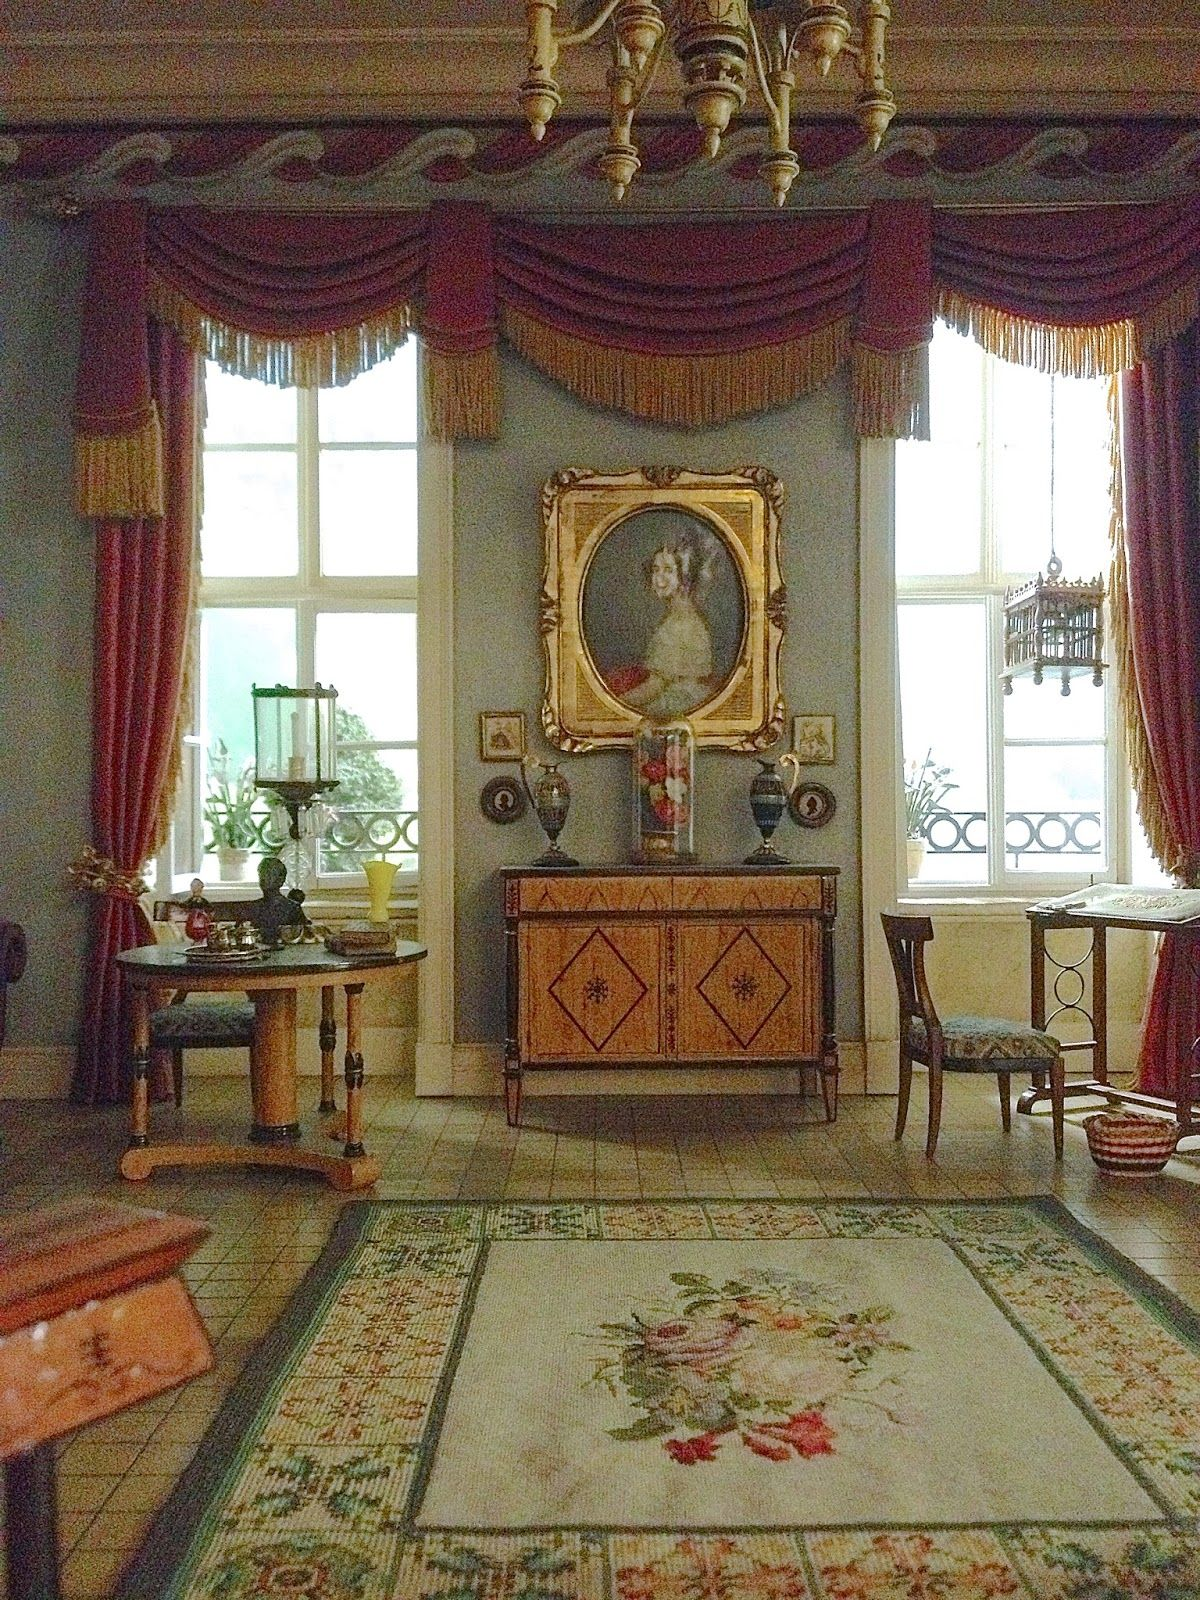 Susan's Mini Homes: Thorne Miniature Rooms - Exquisite reproductions of dollhouse sized rooms.